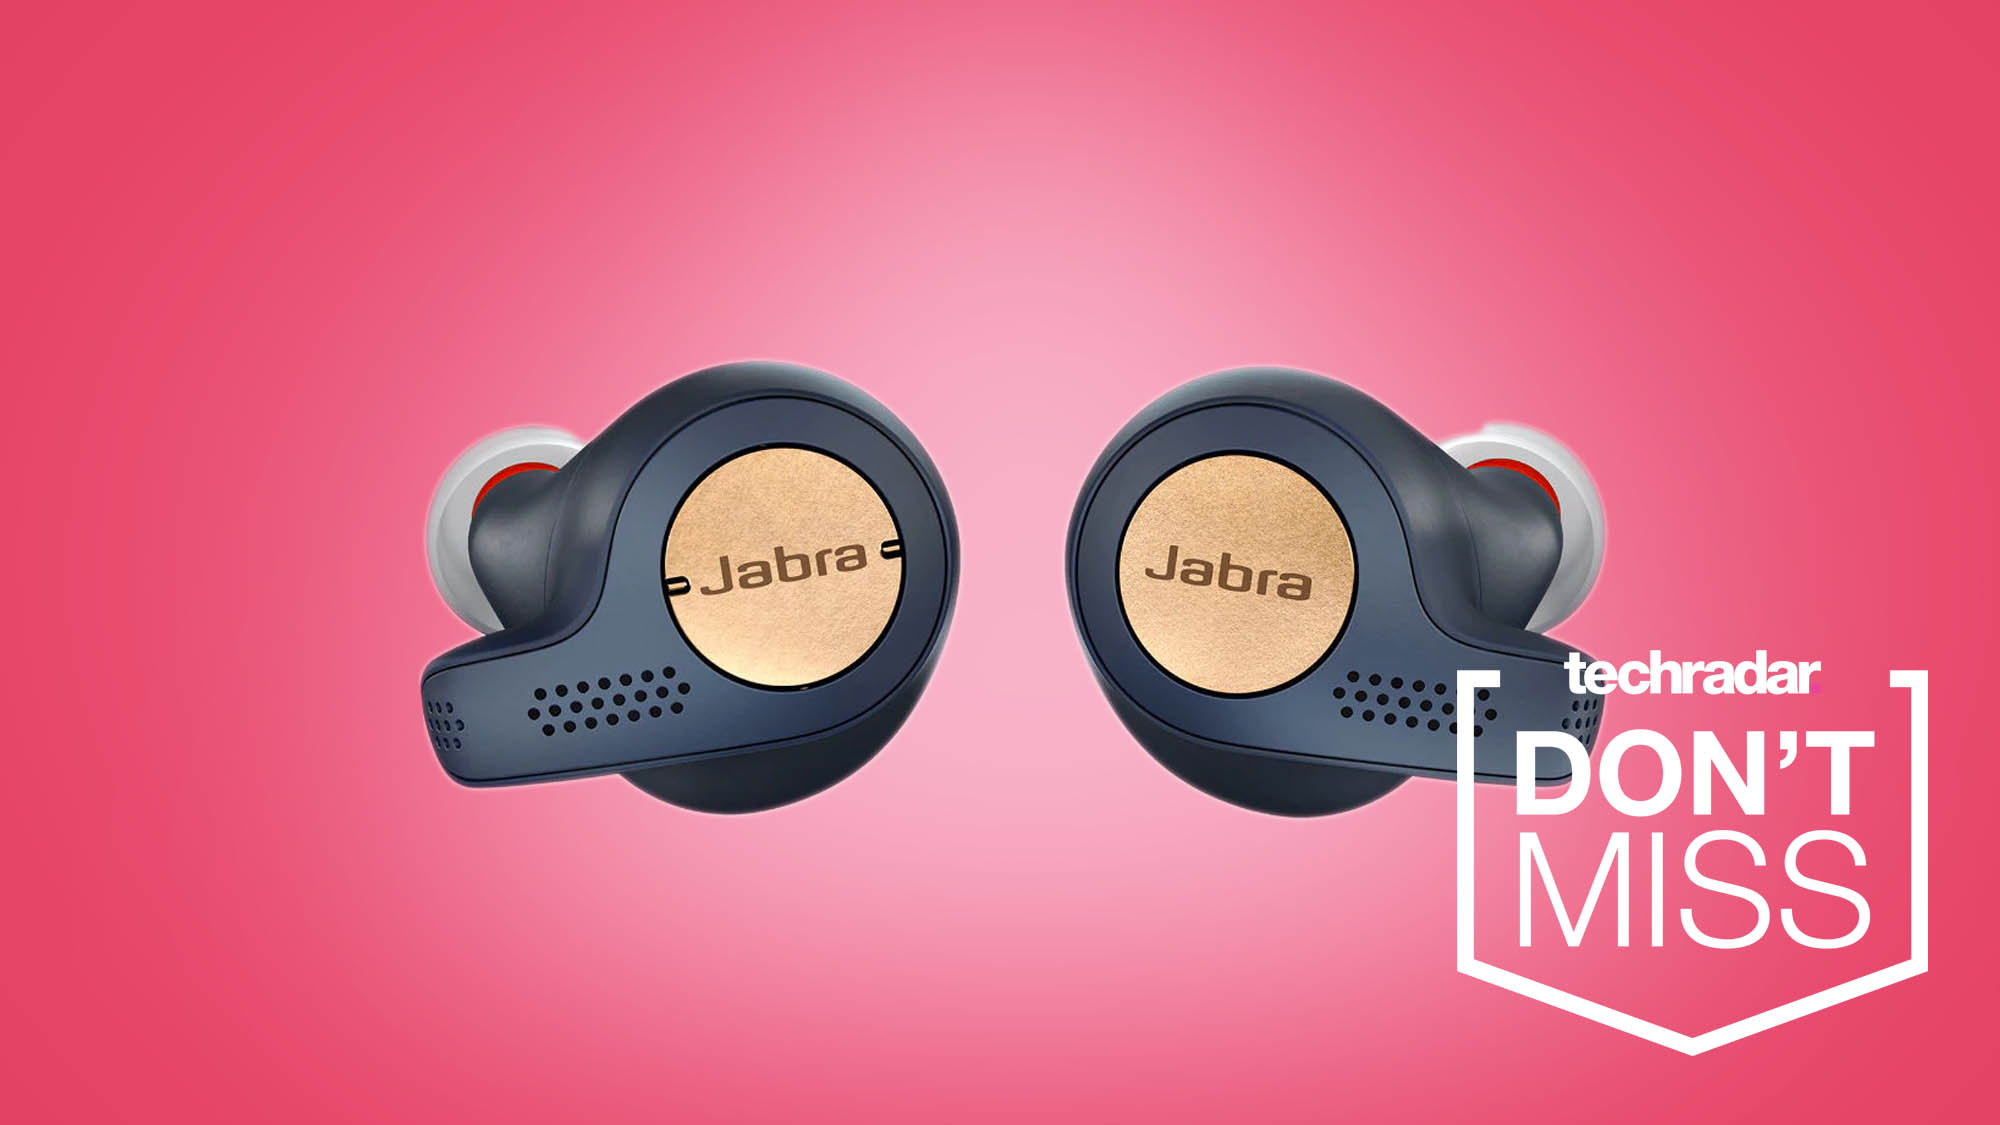 Jabra Elite 65t True Wireless Earbuds Are Just 99 In Outstanding Black Friday Deal Techradar